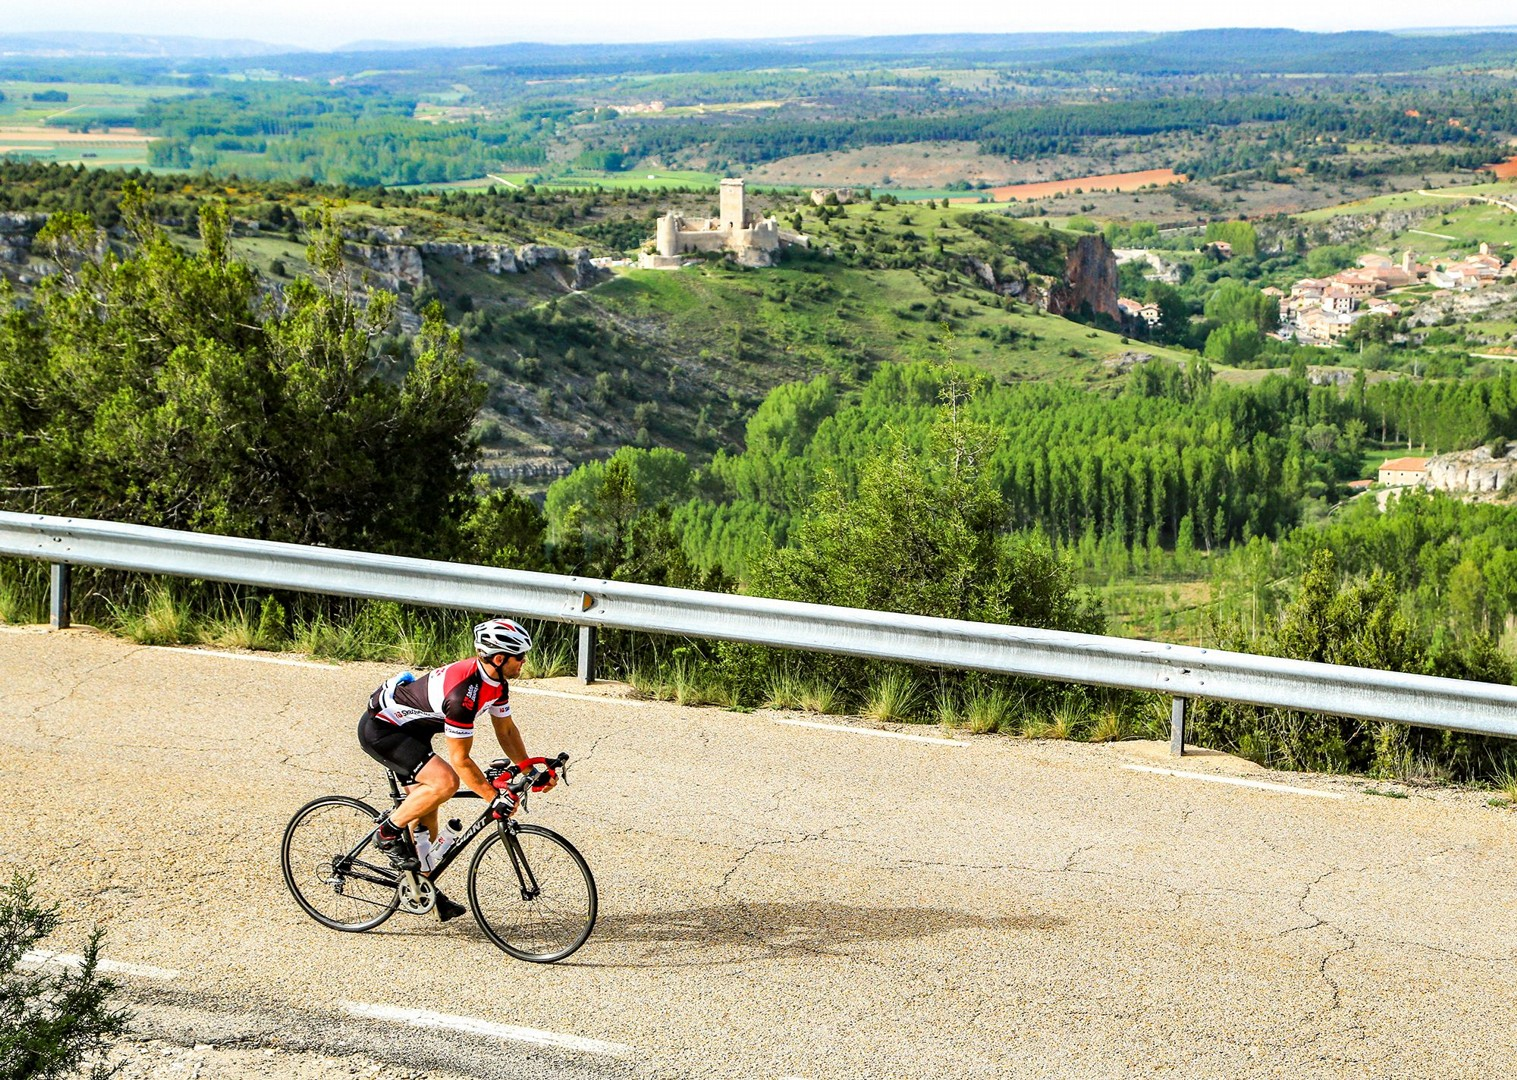 cyclist-in-spain-north-to-south-guided-road-cycling-holidays.jpg - Spain - Basque Country to Andalucia - North to South (21 Days) - Guided Road Cycling Holiday - Road Cycling